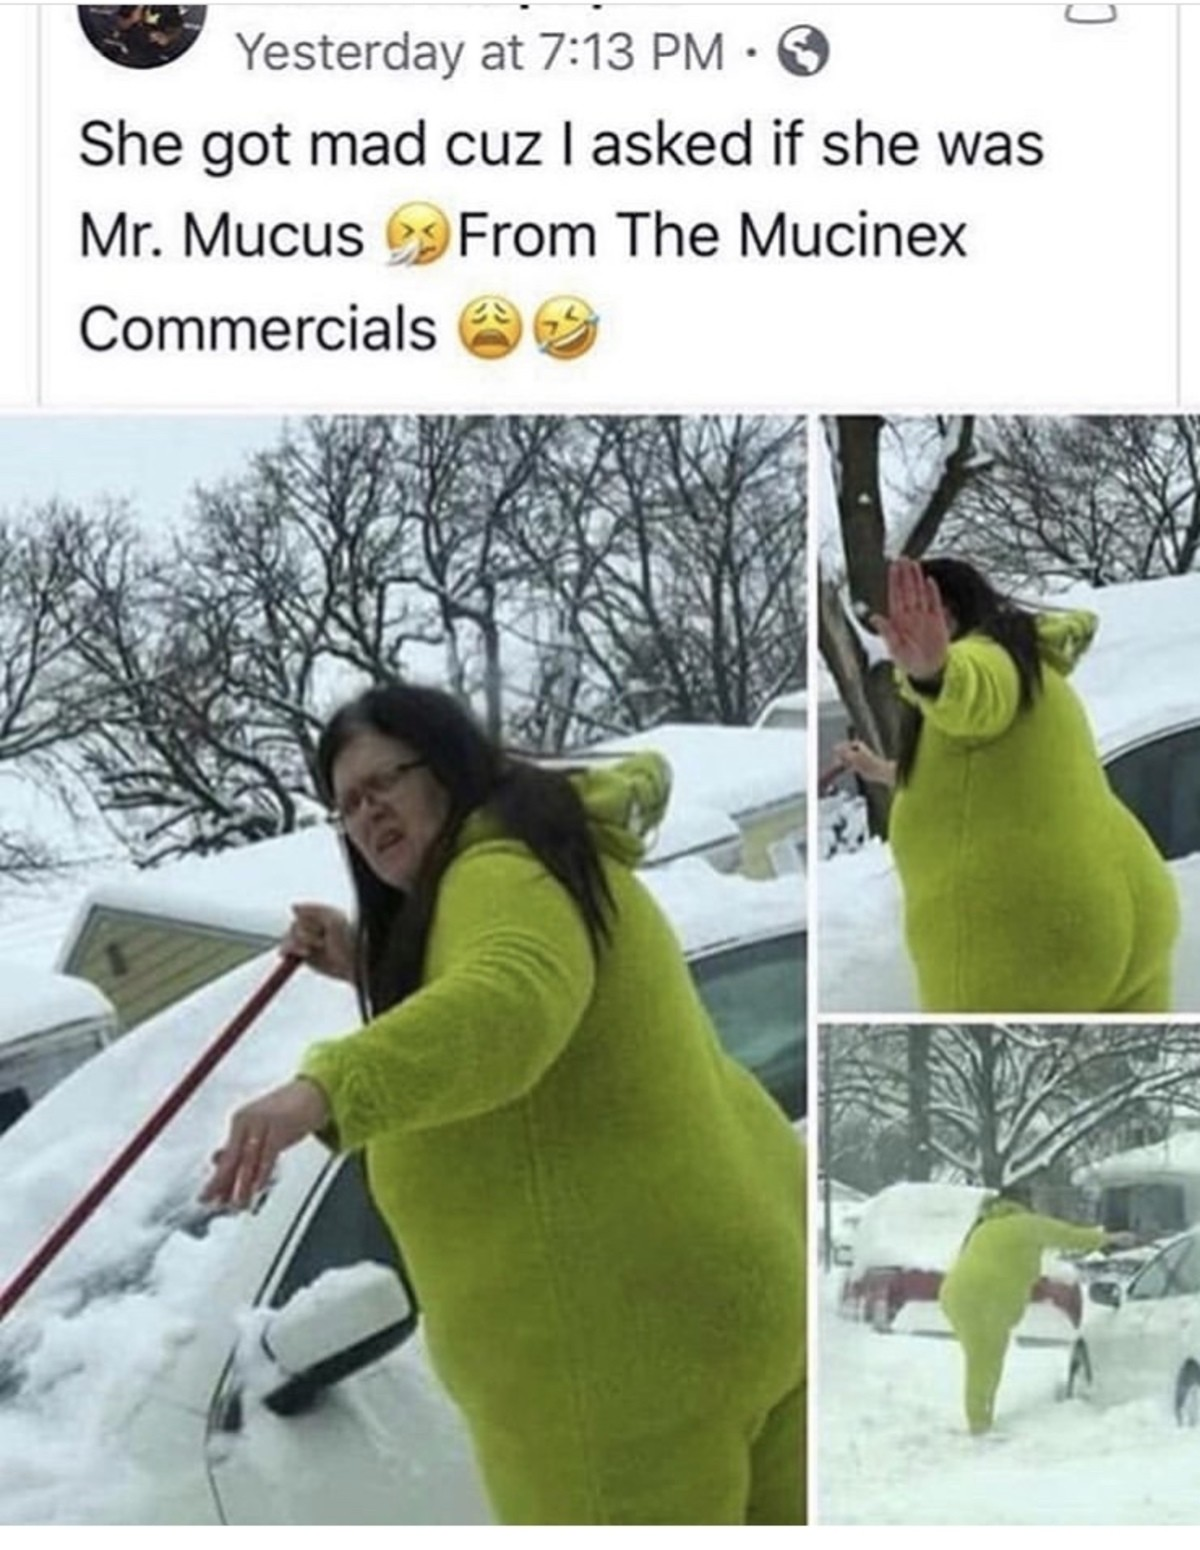 Morning Roast. I want those pajamas though.. I'm all for mocking someone for their behavior. But the lady is just cleaning off her car. The only asshole in this is the person taking the pictures.